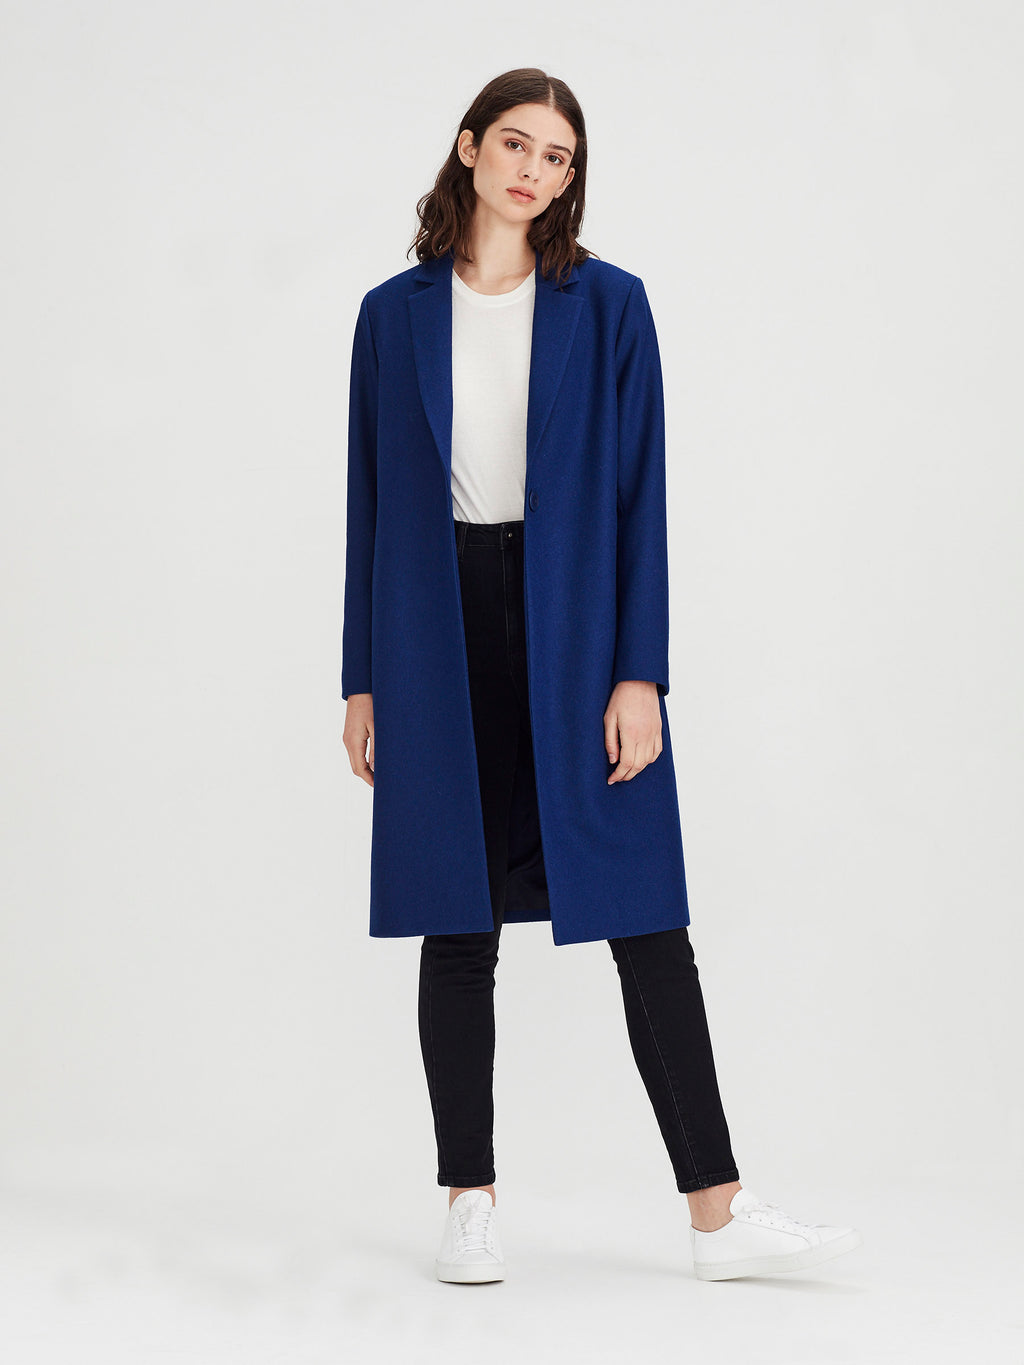 Webster Jacket (Wool Melton) Electric Blue